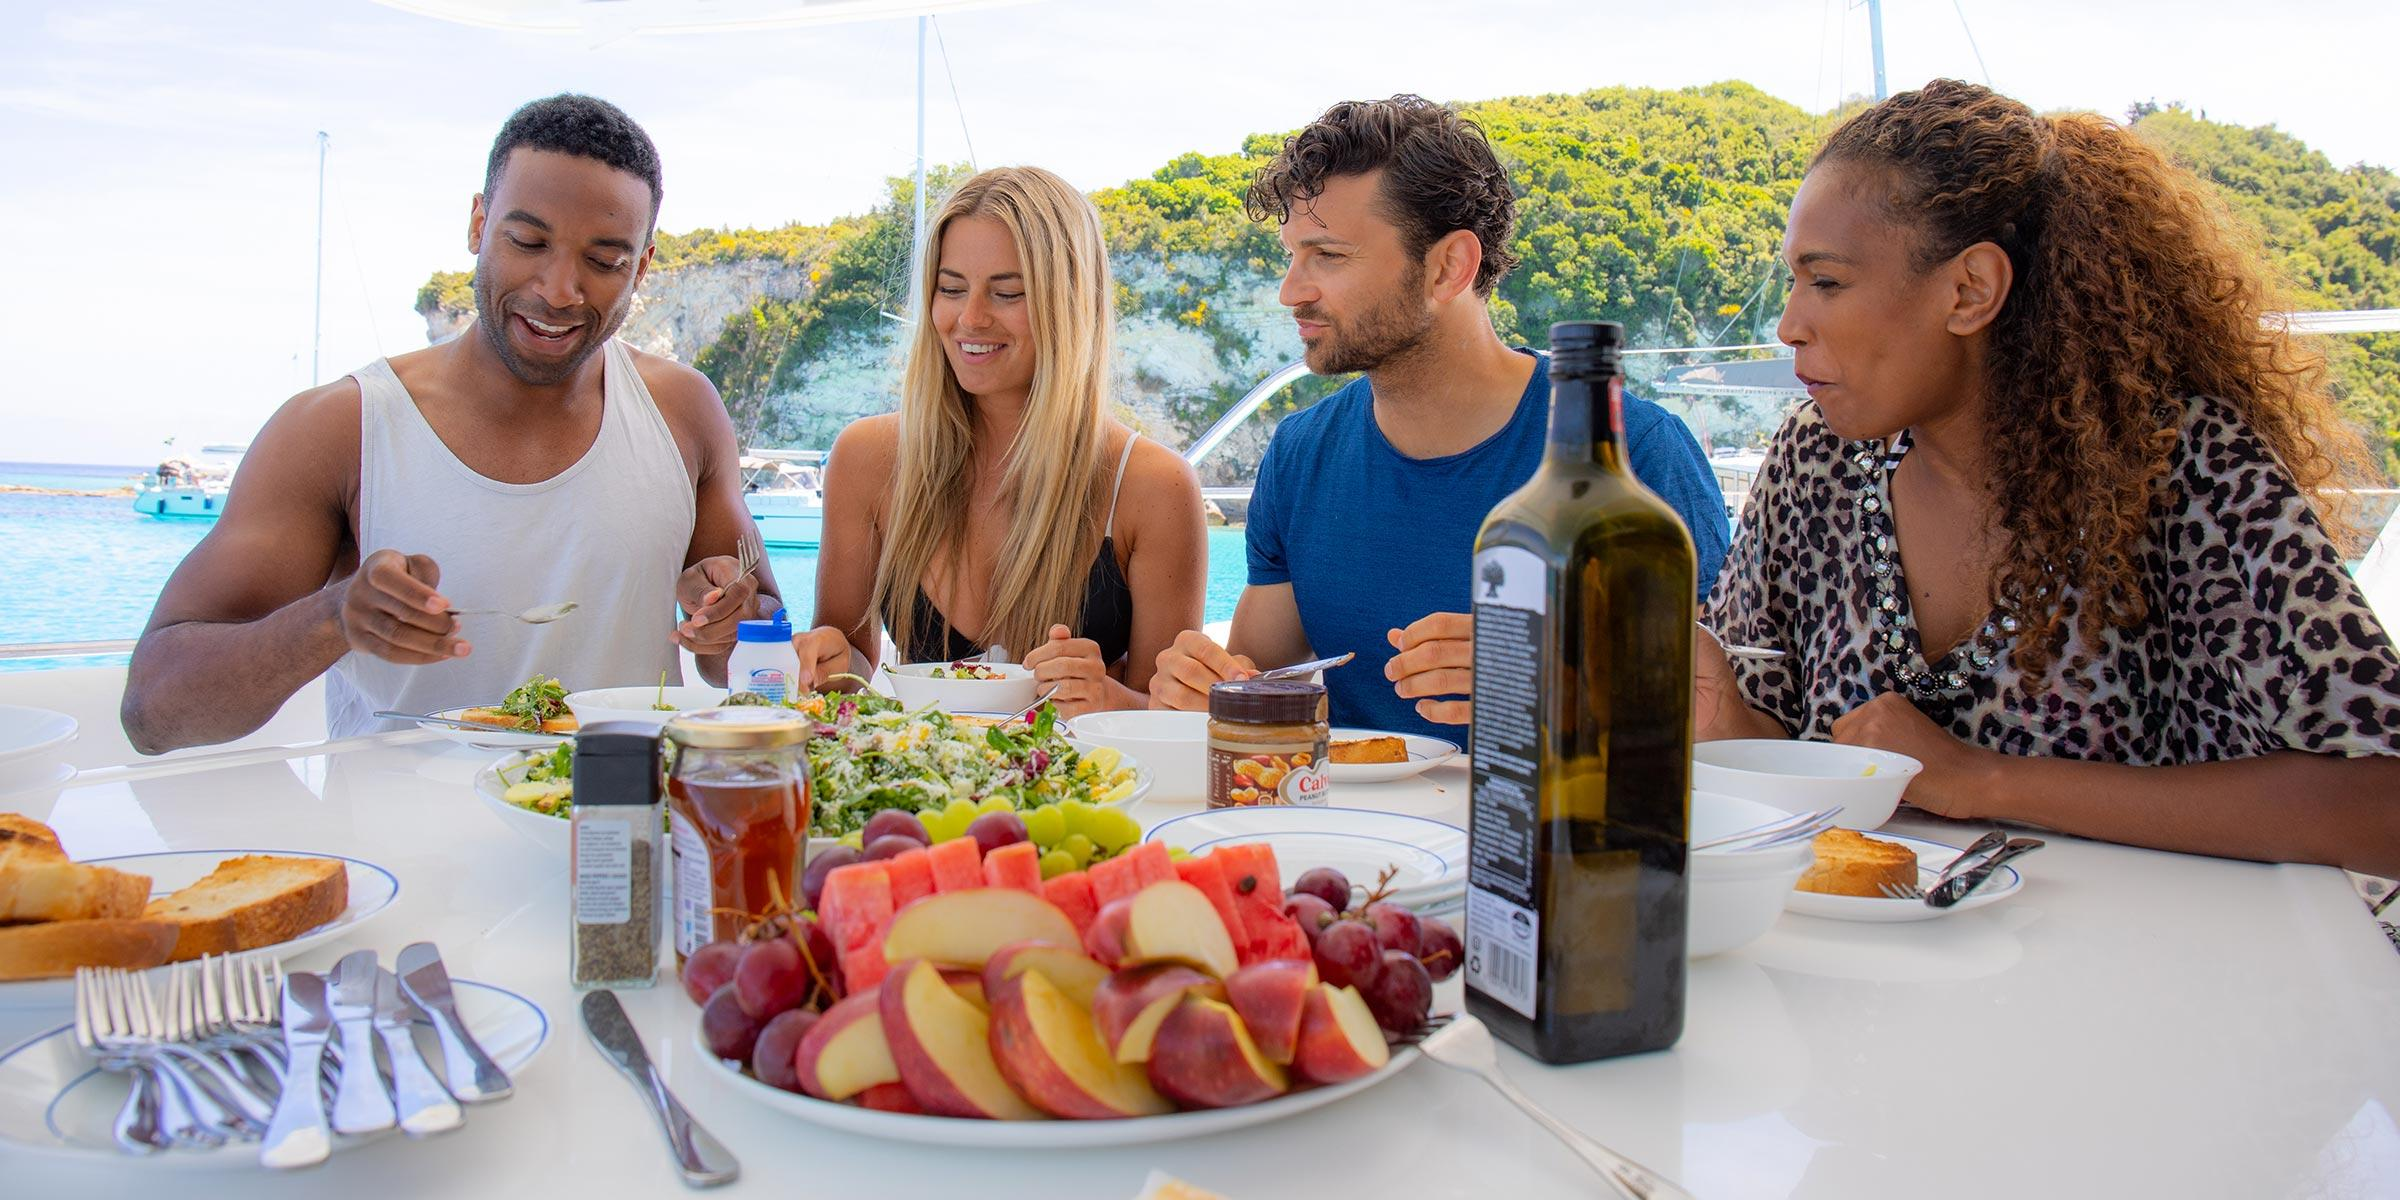 Friends at table on board yacht having lunch in Corfu